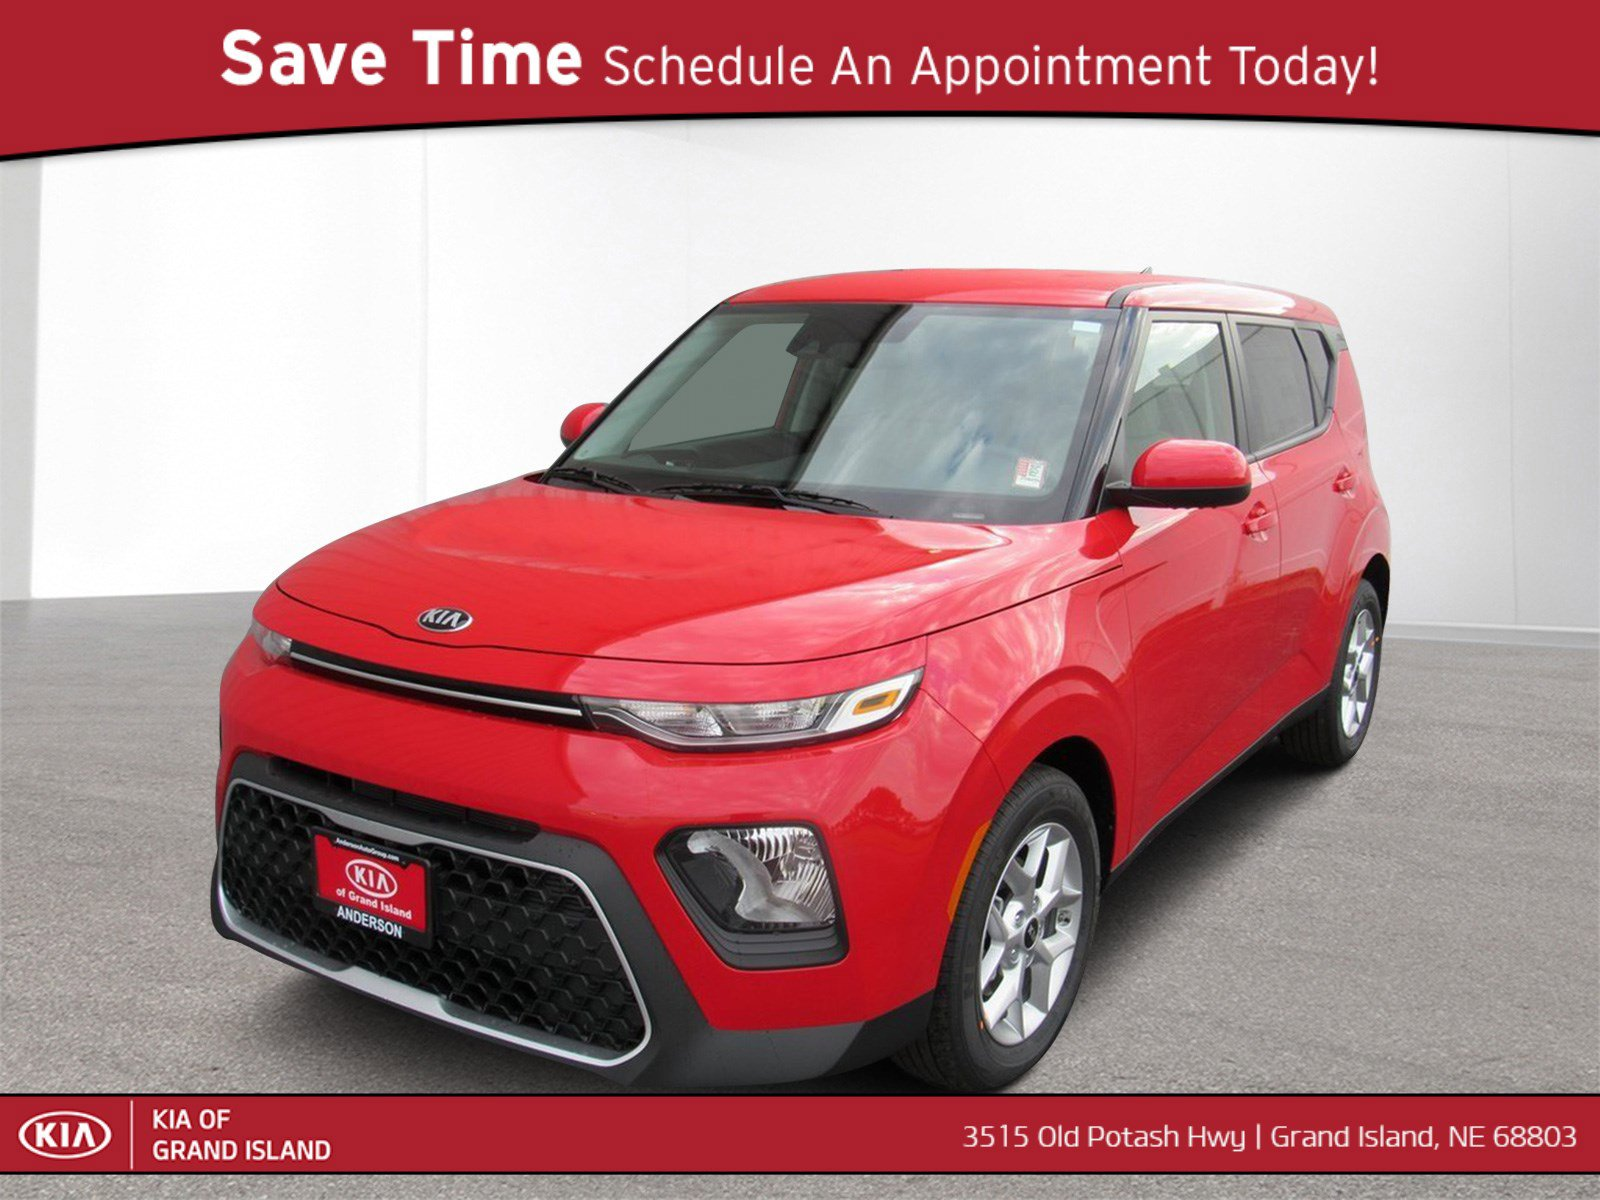 New 2020 Kia Soul S 4D Hatchback for sale in Grand Island NE